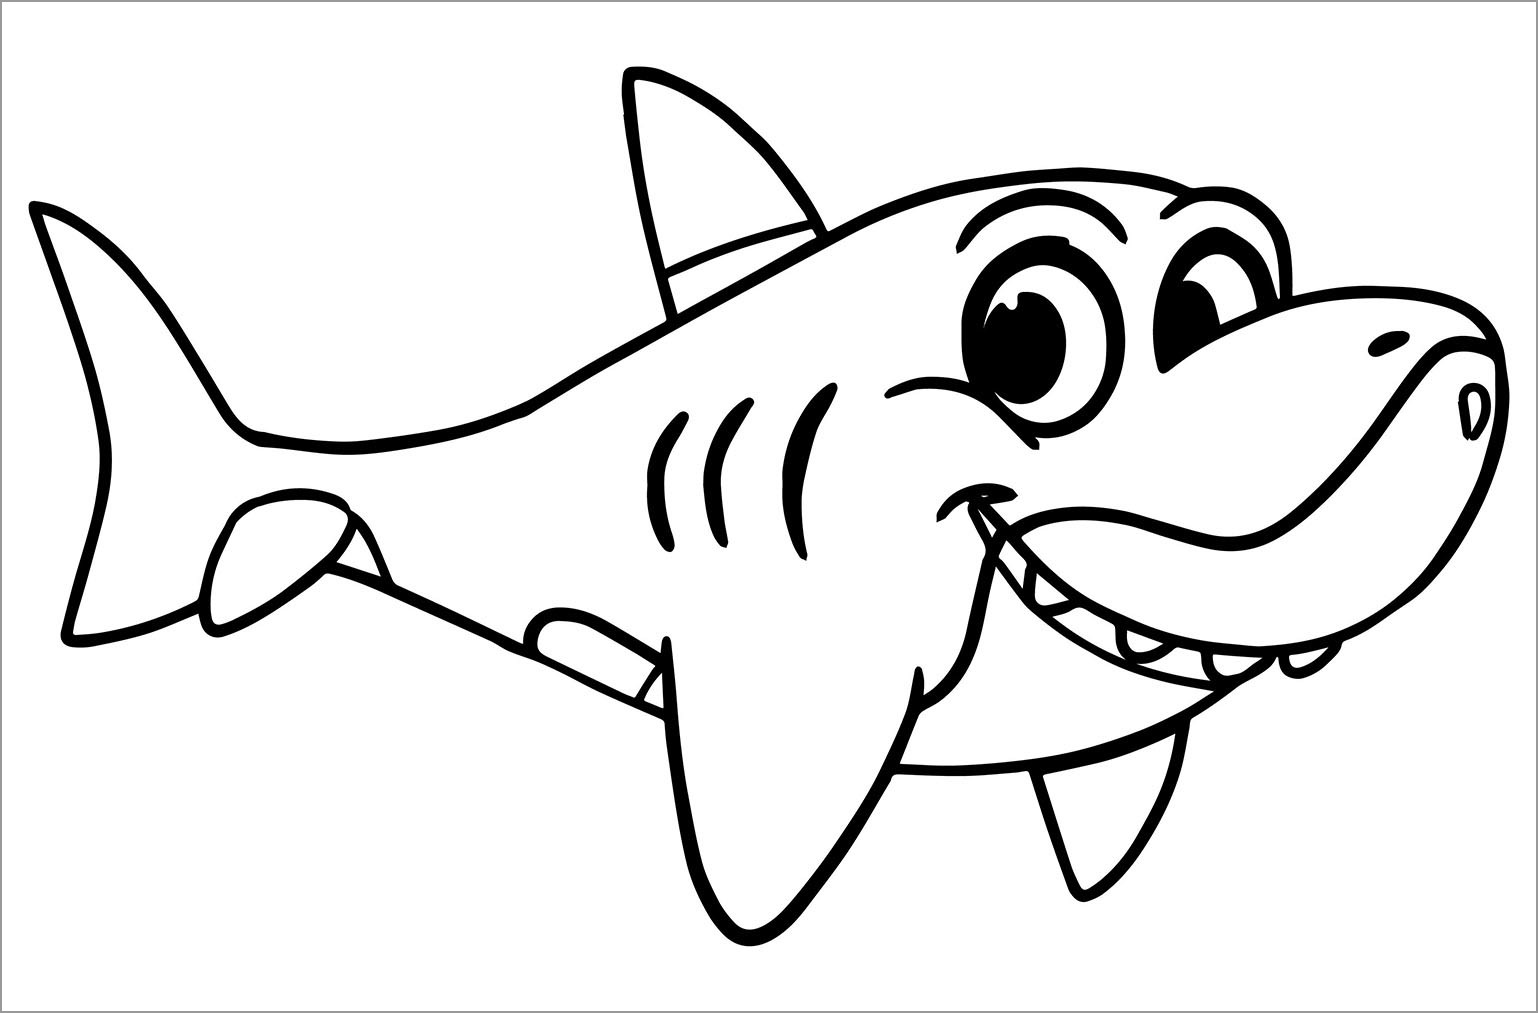 cute shark coloring pages baby shark coloring pages at getdrawings free download coloring shark cute pages